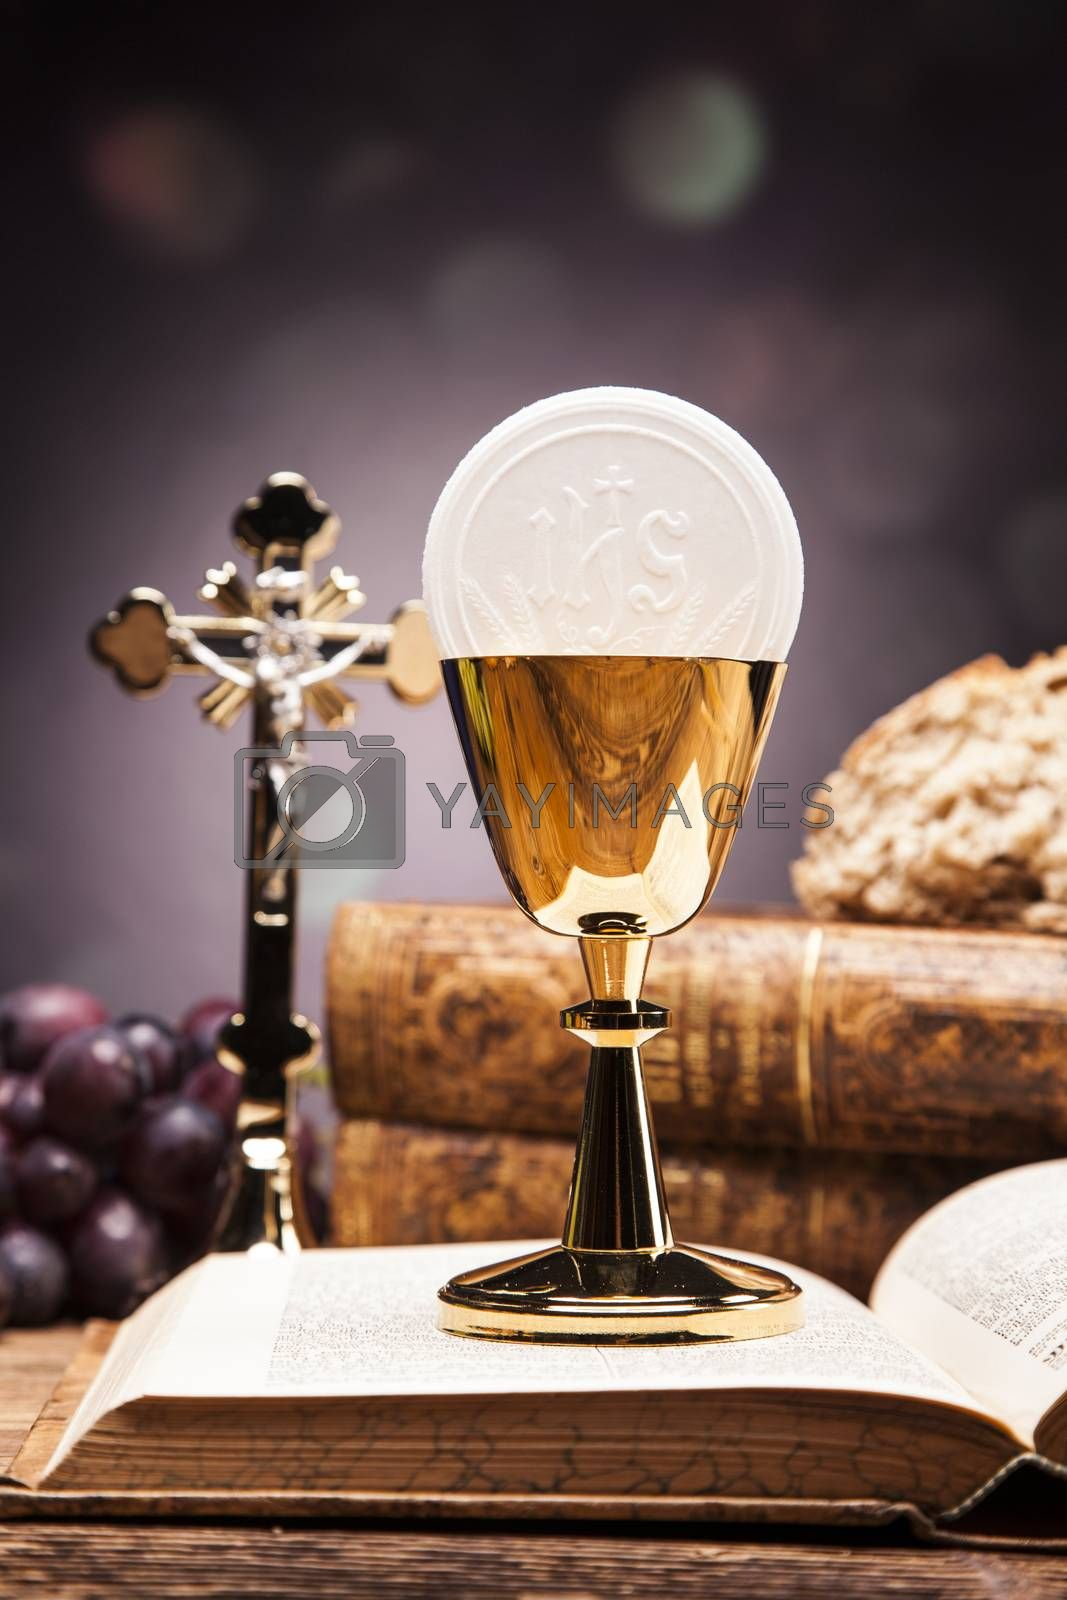 Royalty free image of Christian religion, wine, bread and the word of God on yellow background by fikmik